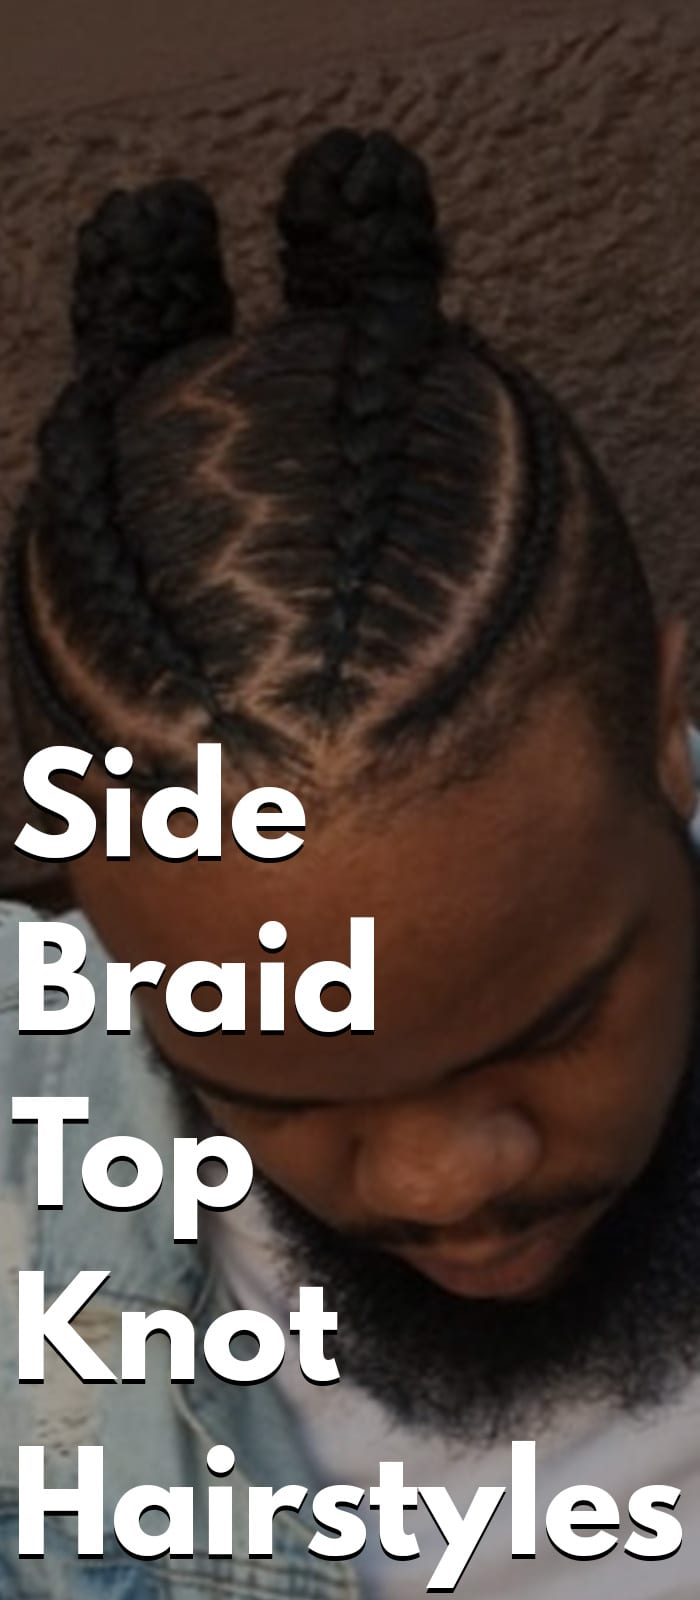 Side Braid Top Knot Hairstyles